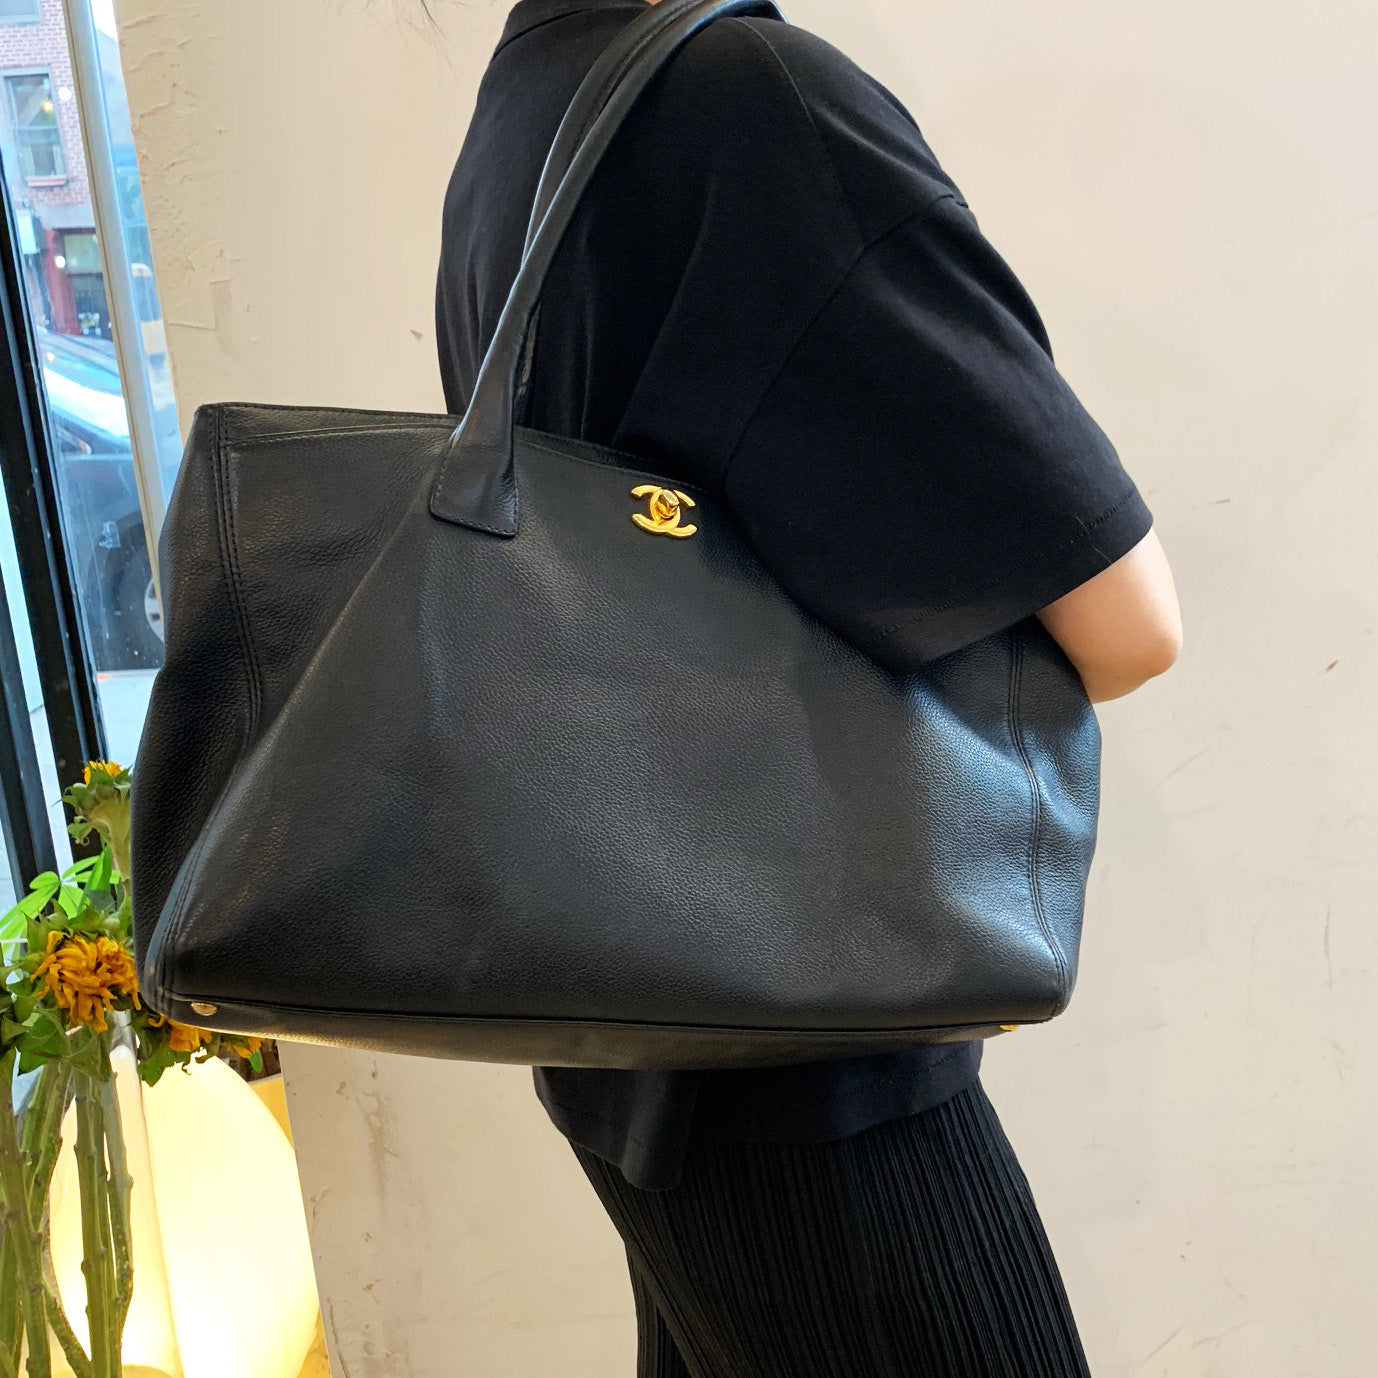 Chanel Black Caviar Leather Tote/Shoulder Bag